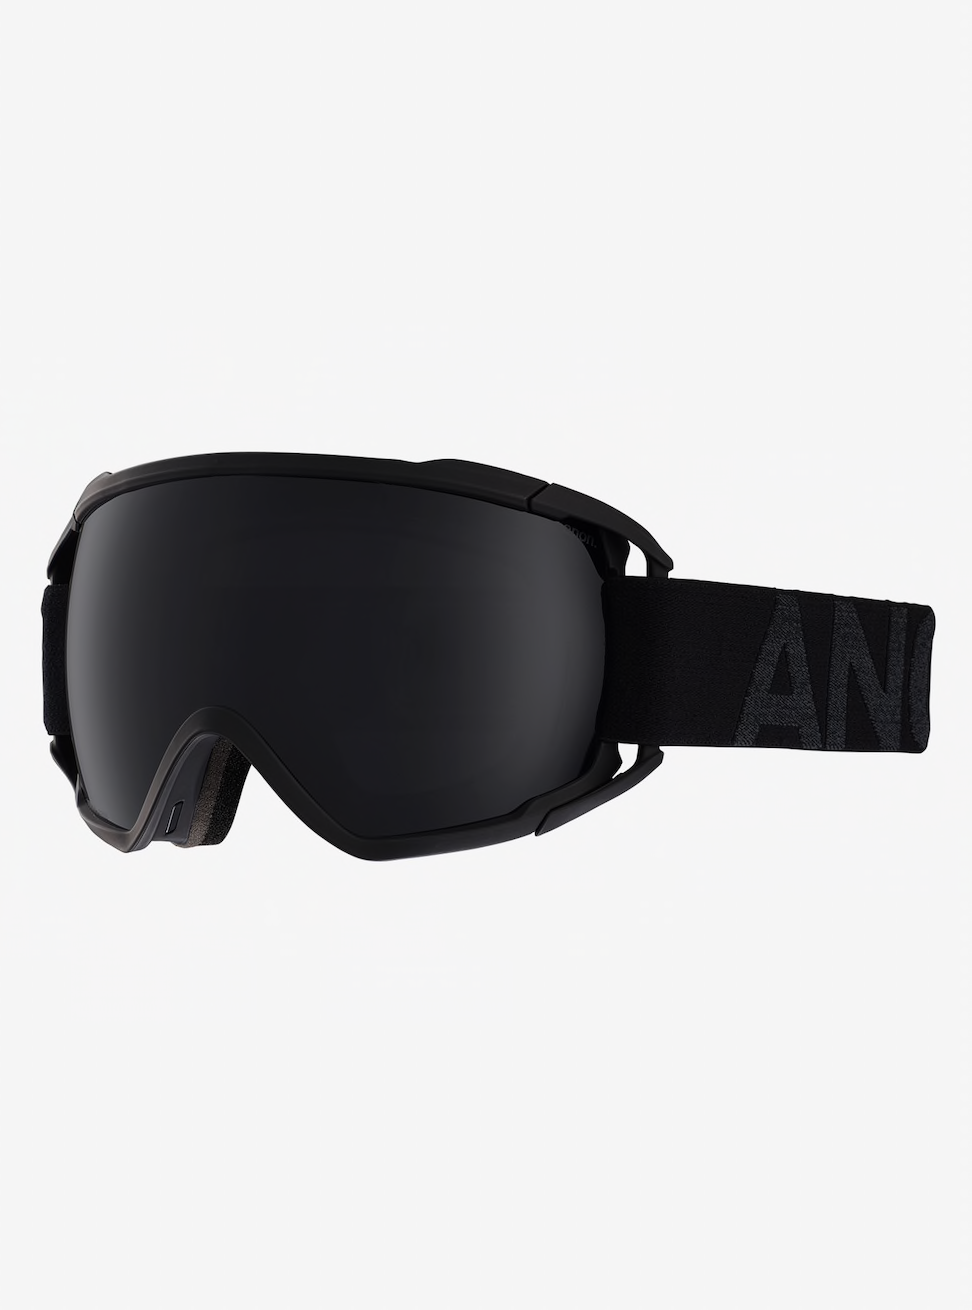 2019 Anon Circuit Goggle - Black